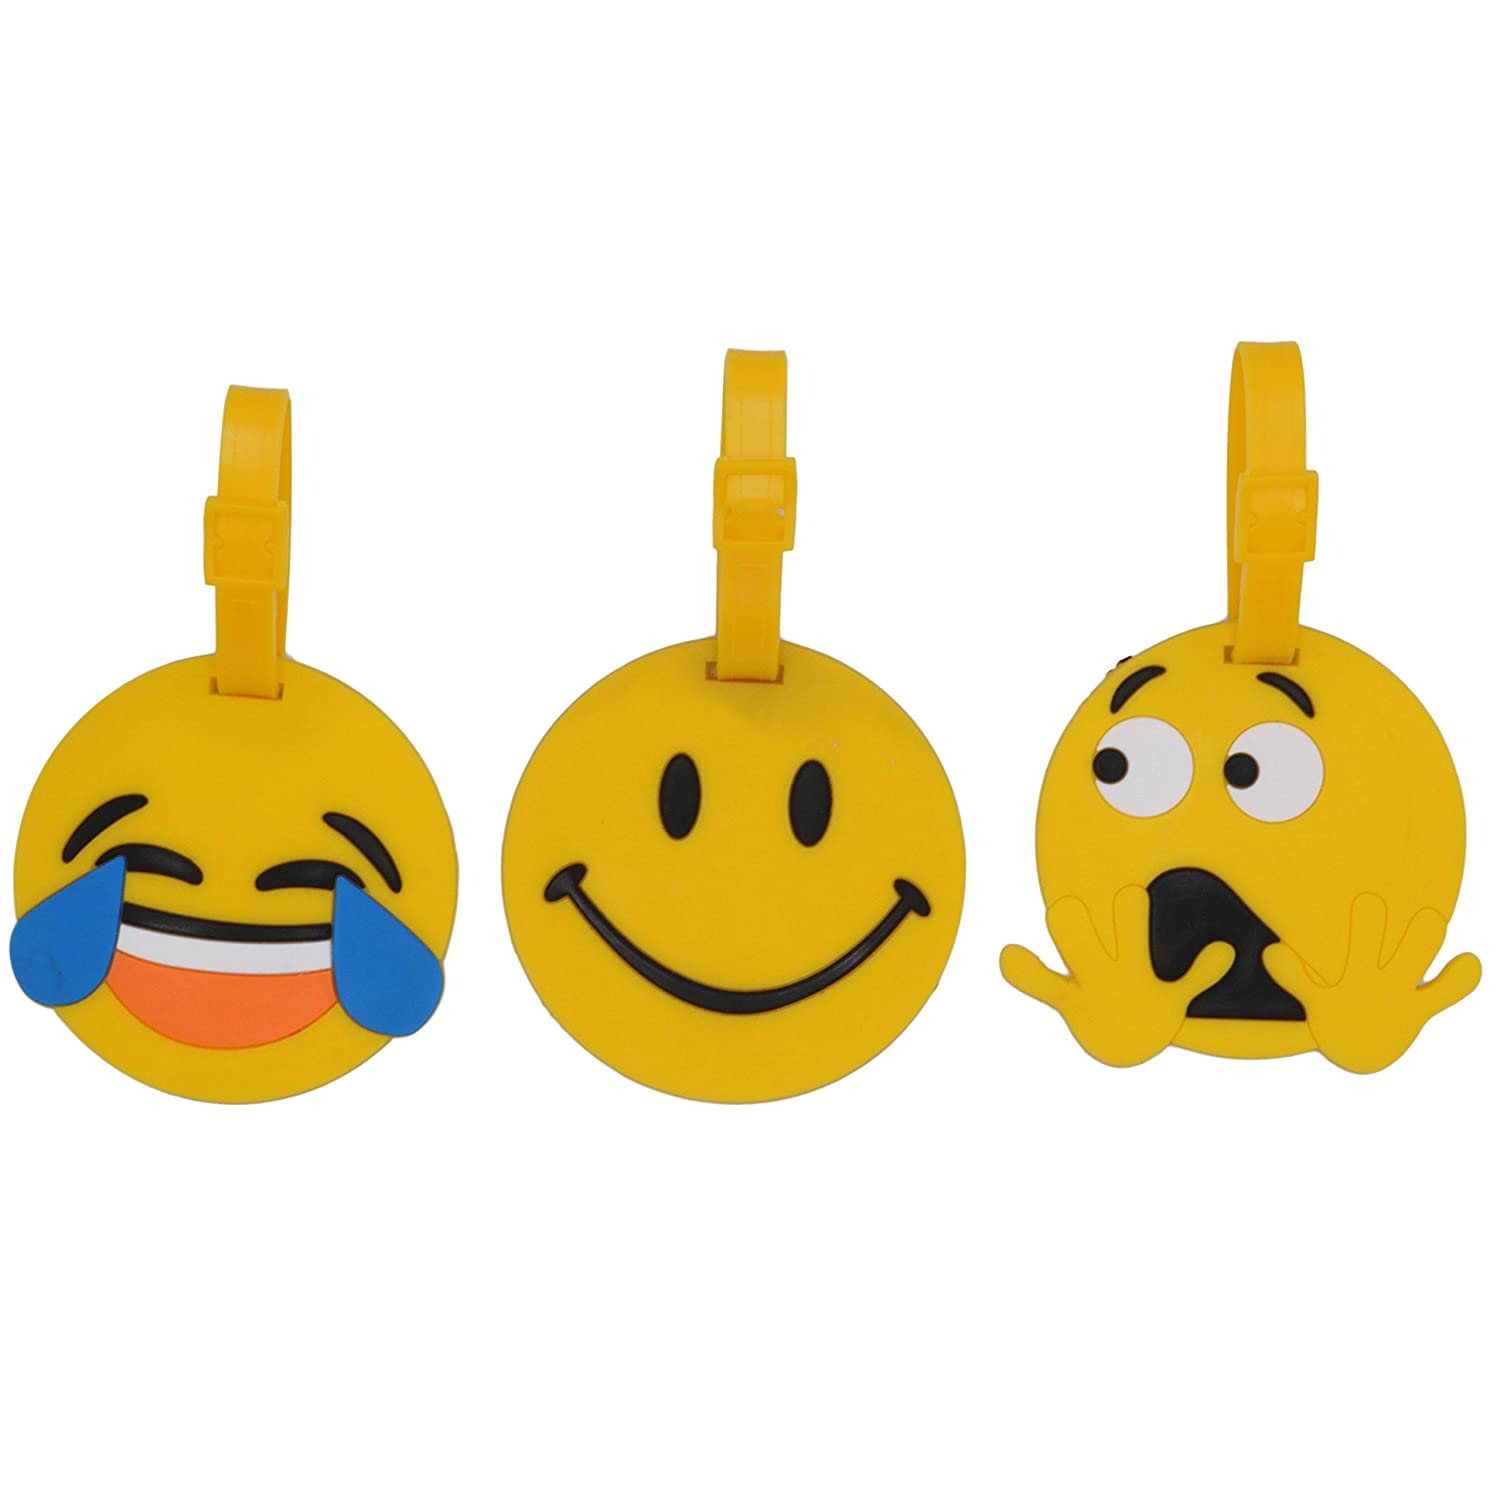 Set of 3 – Hot Cute Kawaii Cartoon Silicone Travel Luggage ID Tag for Bags (Planes), Emoticon